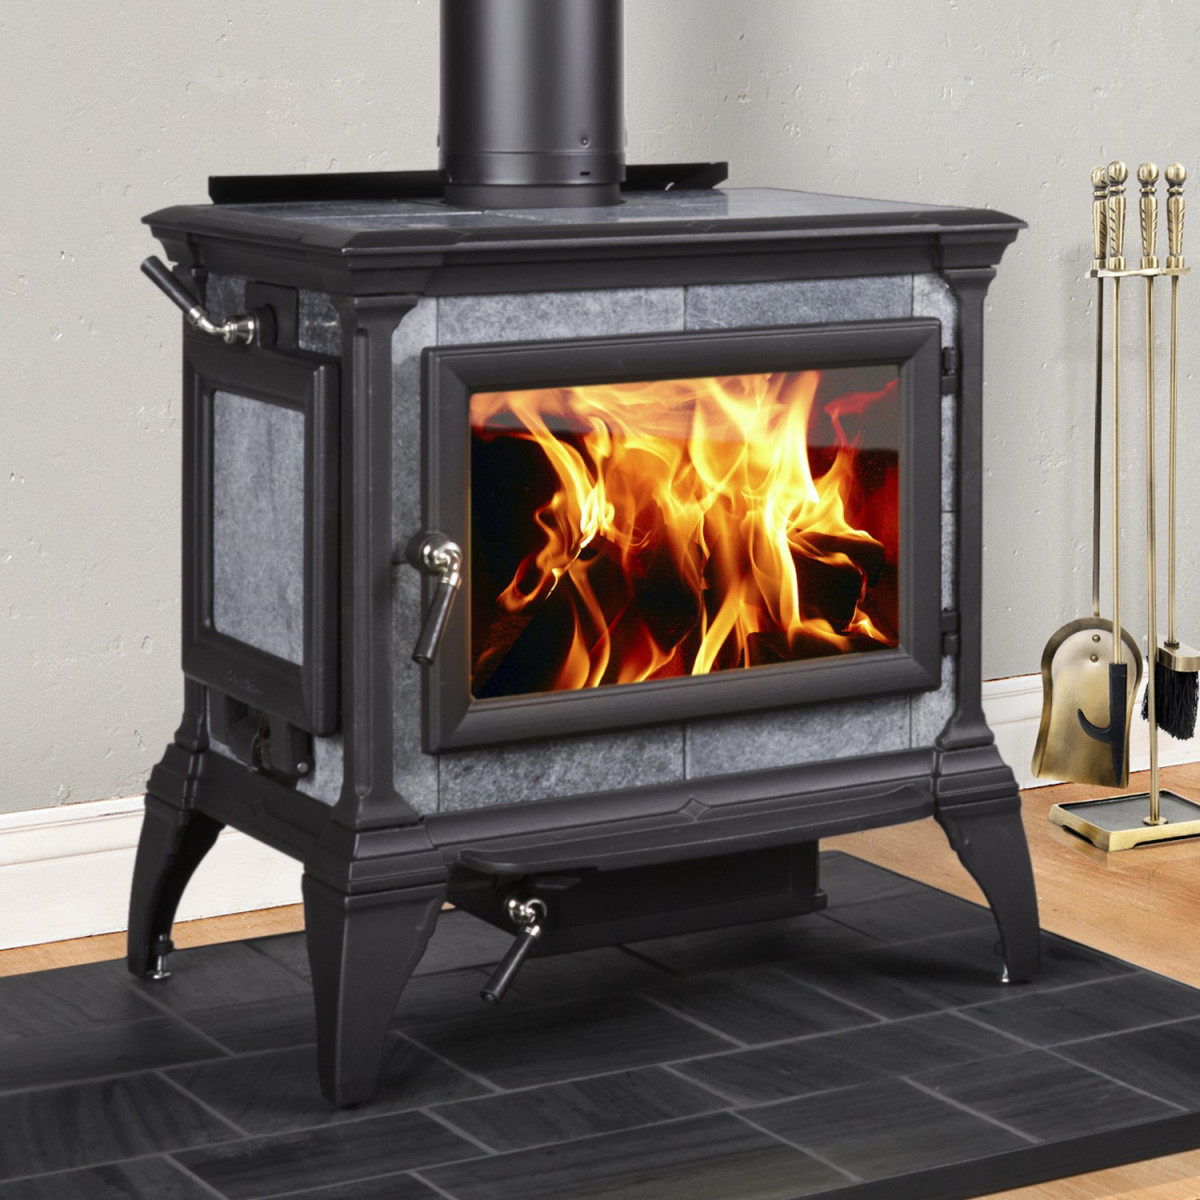 Wood burning stove santa rosa wood stove sonoma county Wood burning stoves